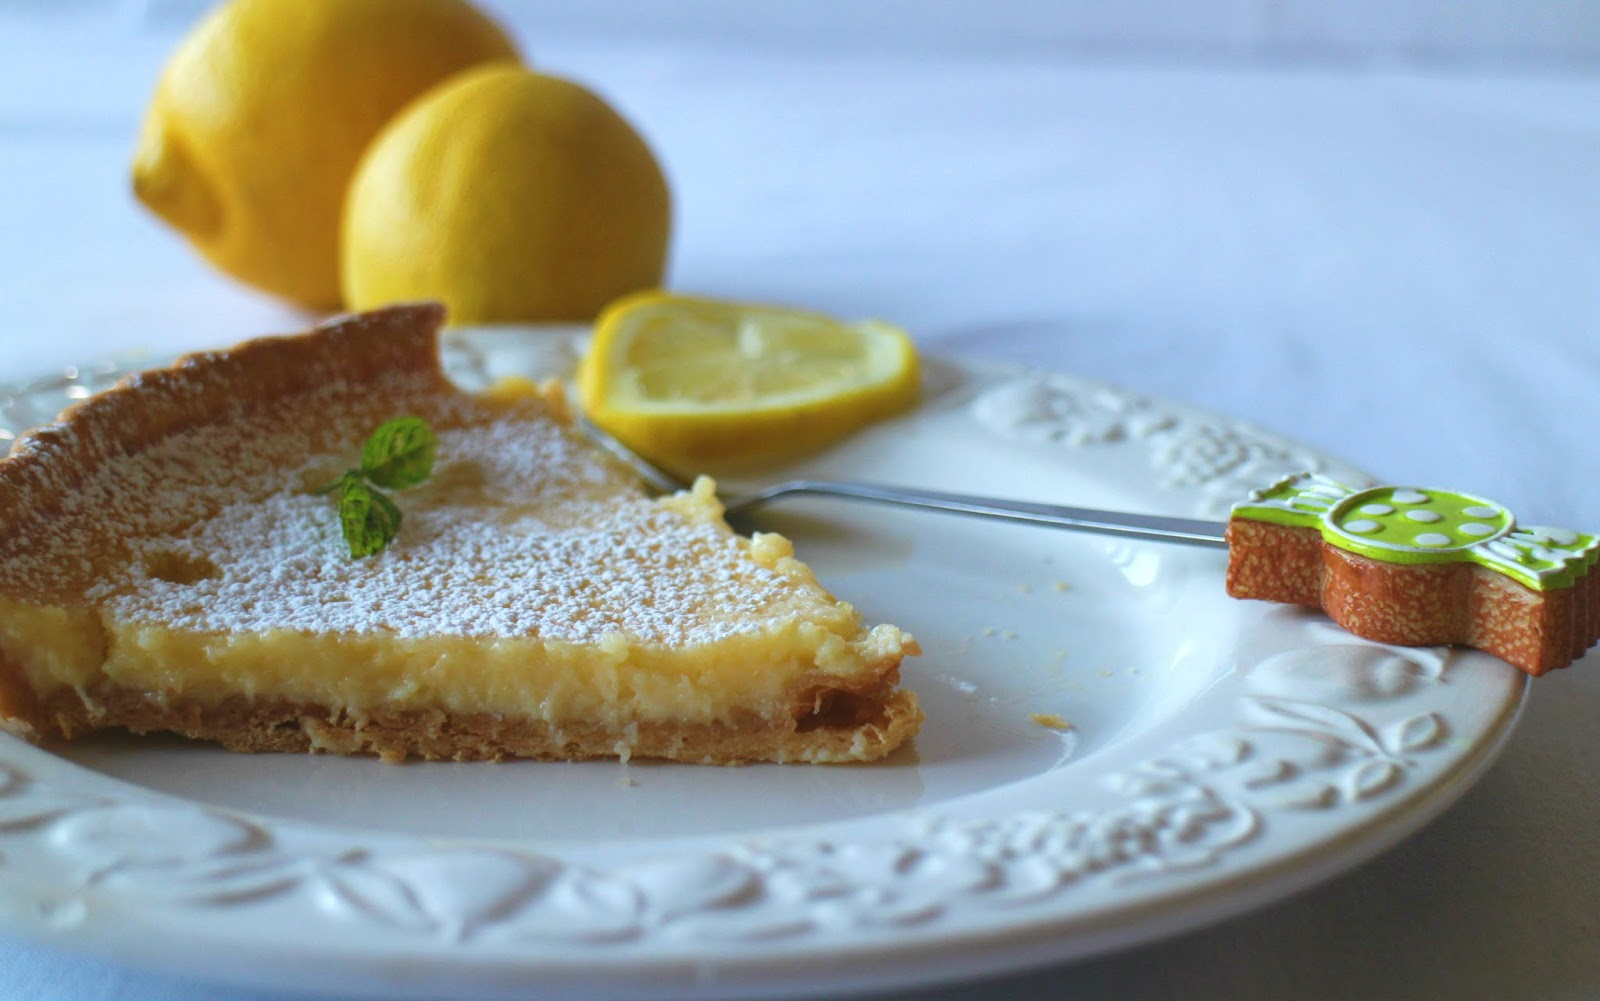 french-lemon-tart, tarta-de-limon-francesa